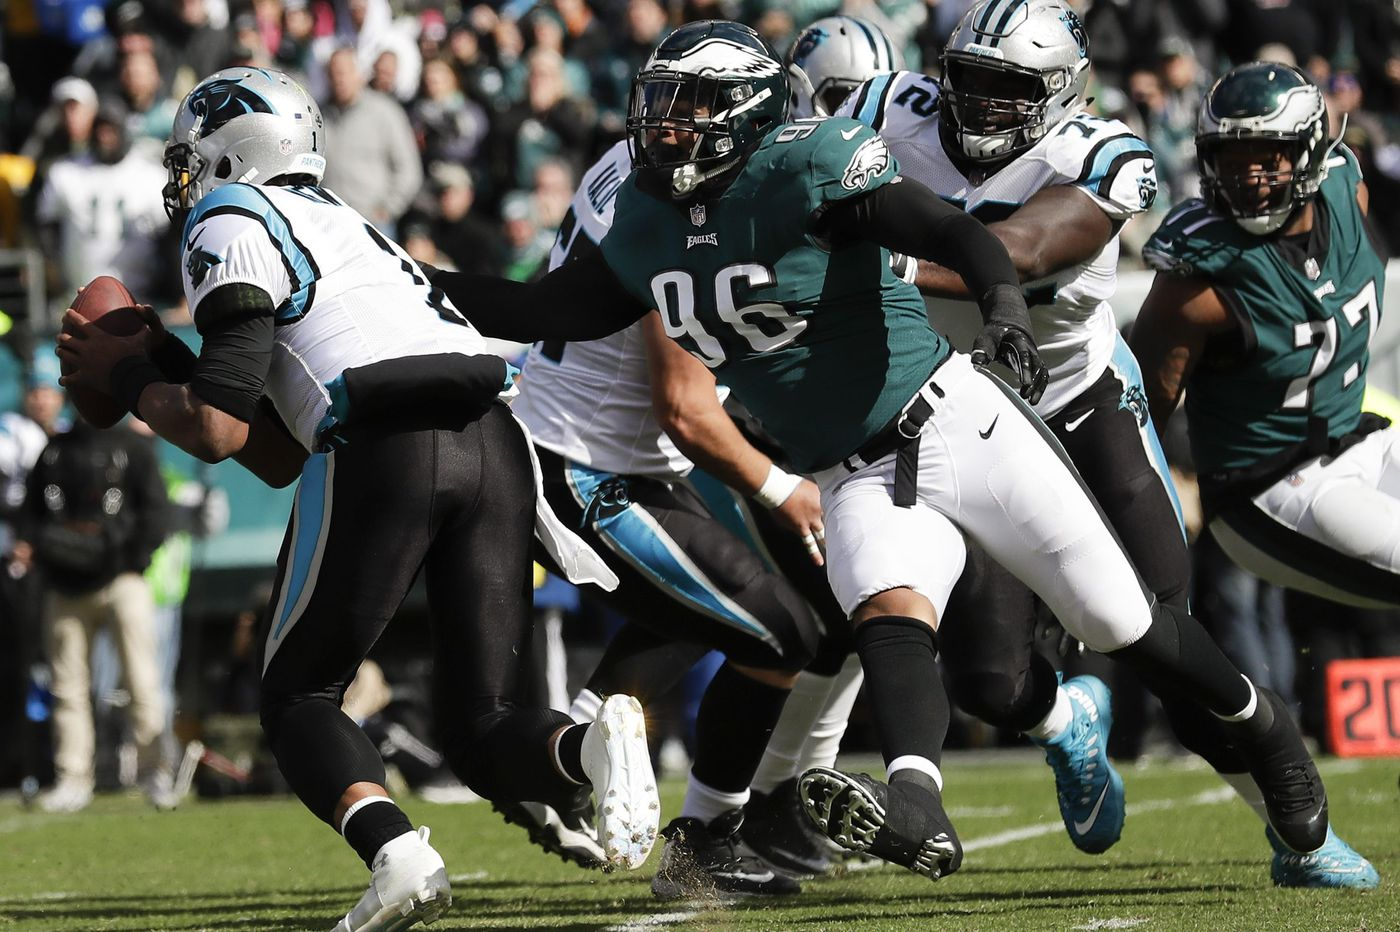 Meltdown-prone Eagles defense suffers another blow with the loss of Derek Barnett